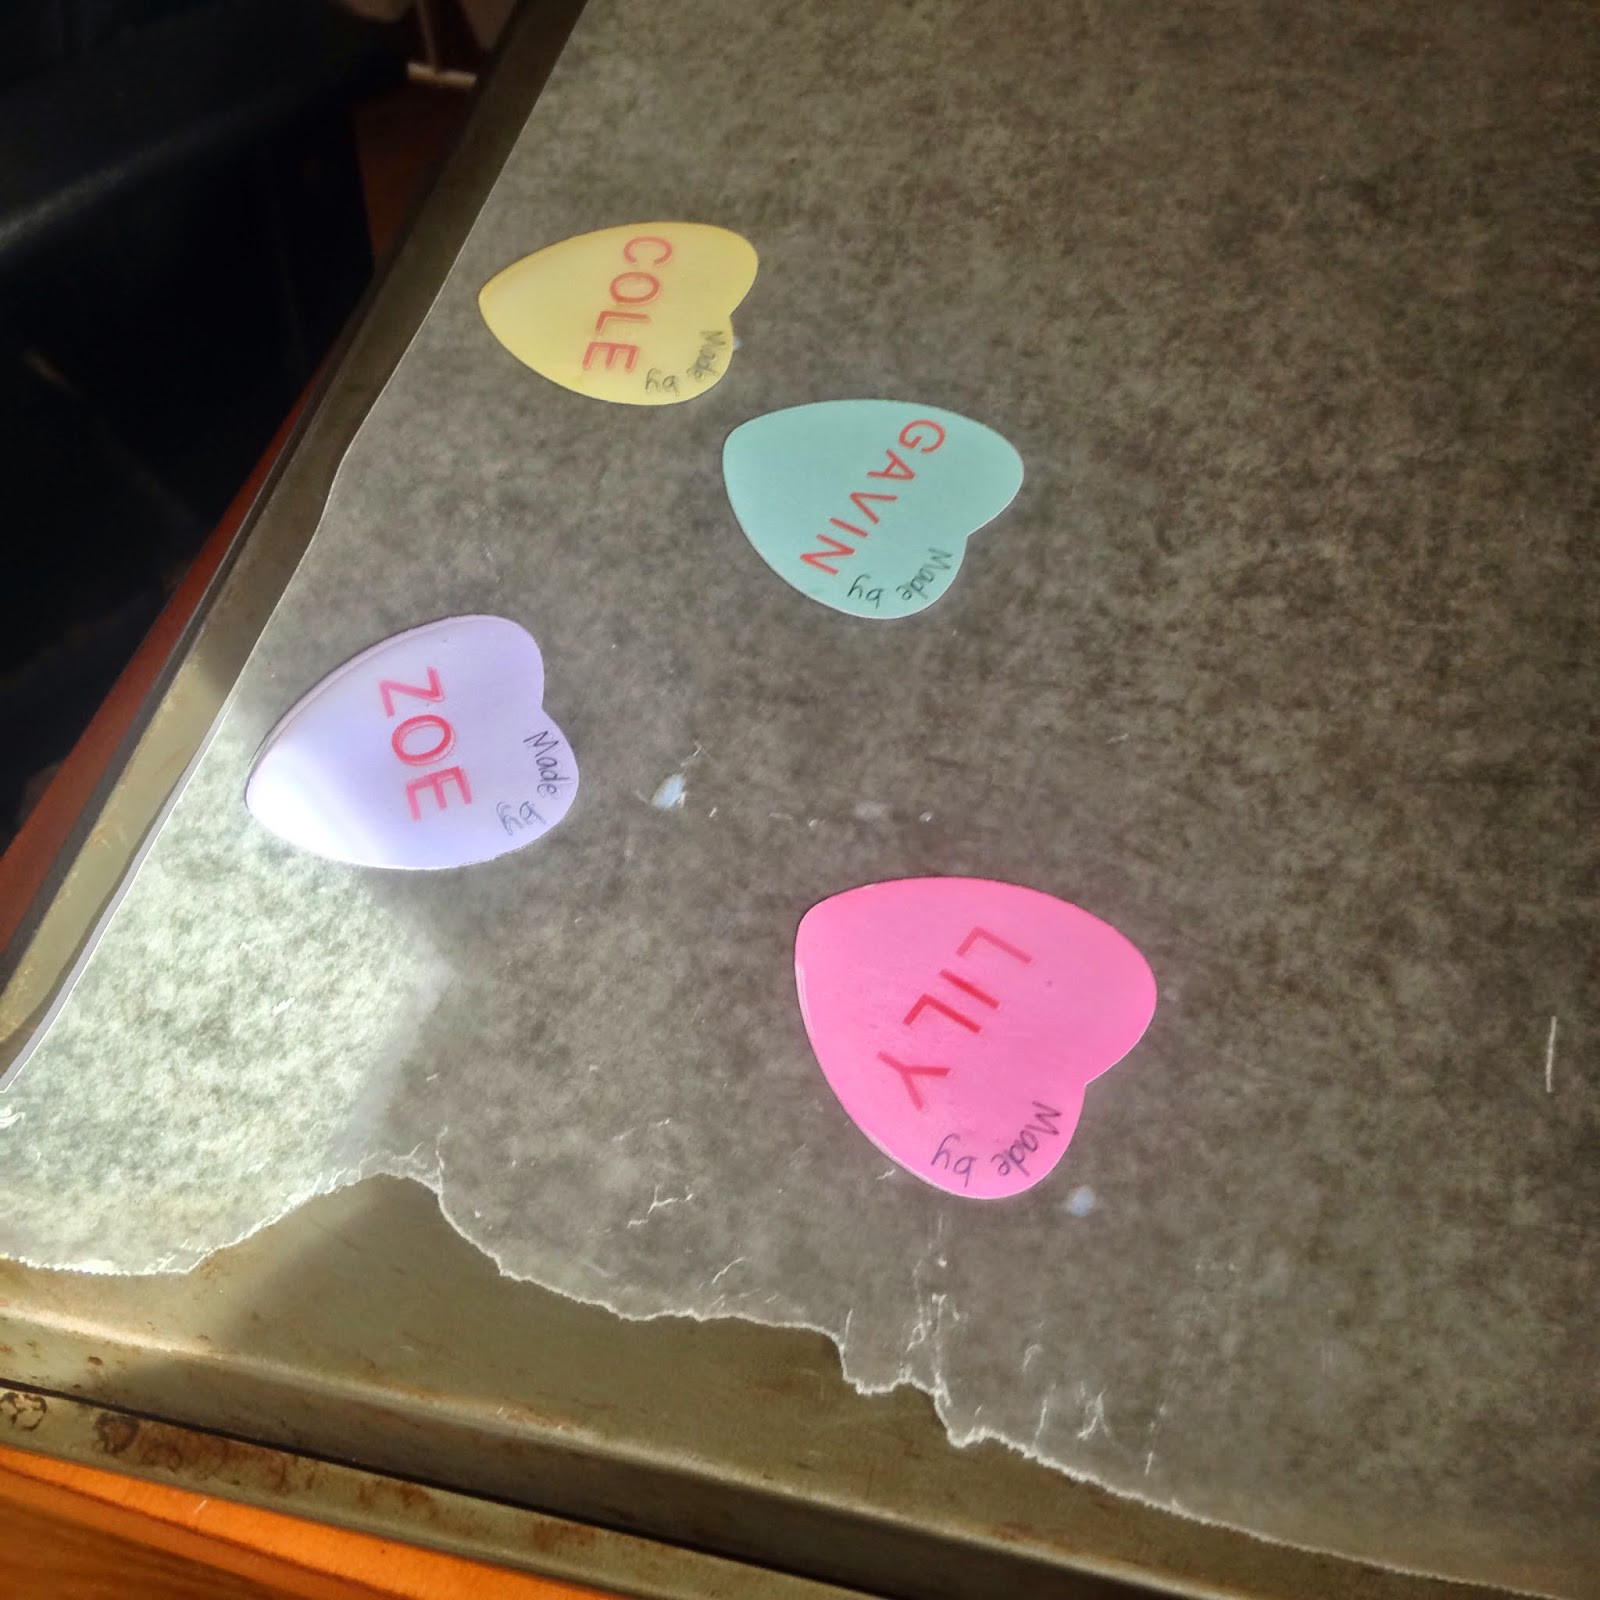 Silhouette, print and cut, 3D print and cut, magnets, print and cut ideas, cookie sheet, freezer paper